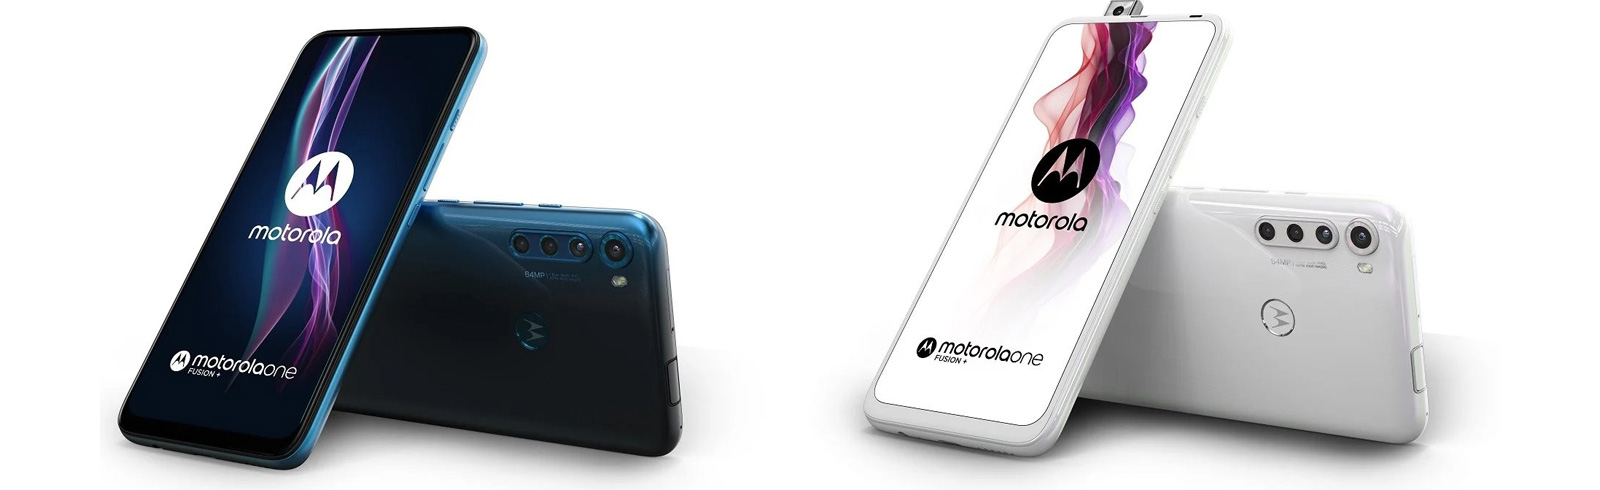 Motorola One Fusion+ goes official - specifications and prices